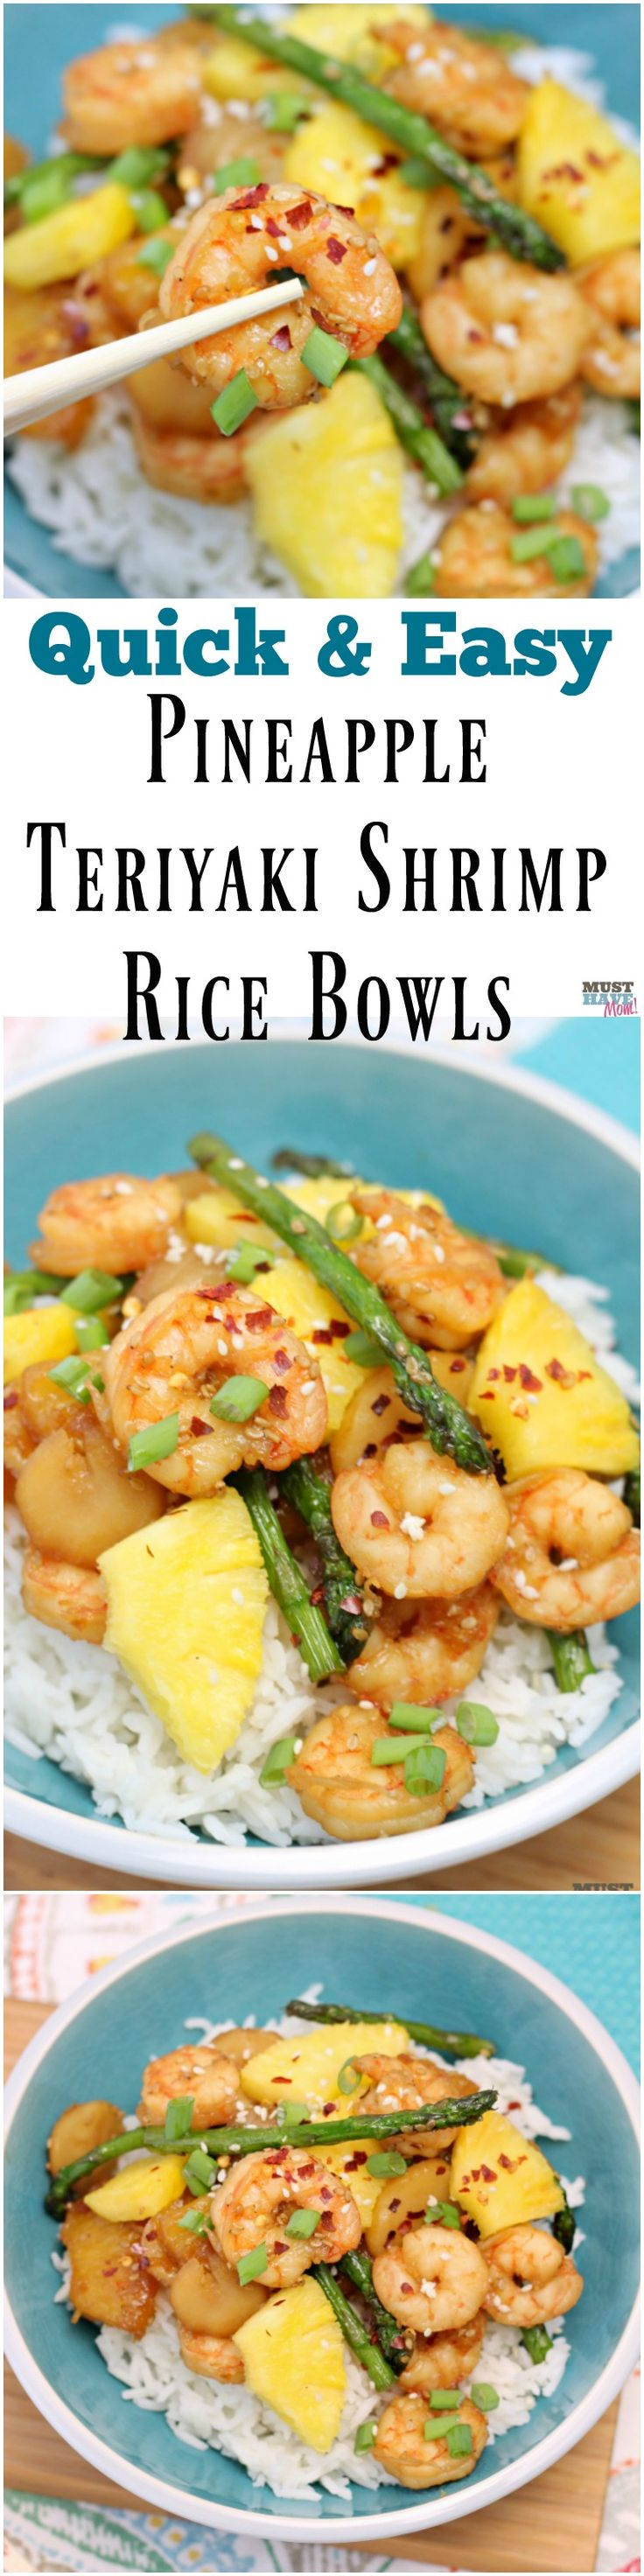 Quick and easy pineapple teriyaki shrimp rice bowls recipe! Easy shrimp recipes for busy weeknights that can be made in 20 minutes or less! (Shrimp Recipes Easy)